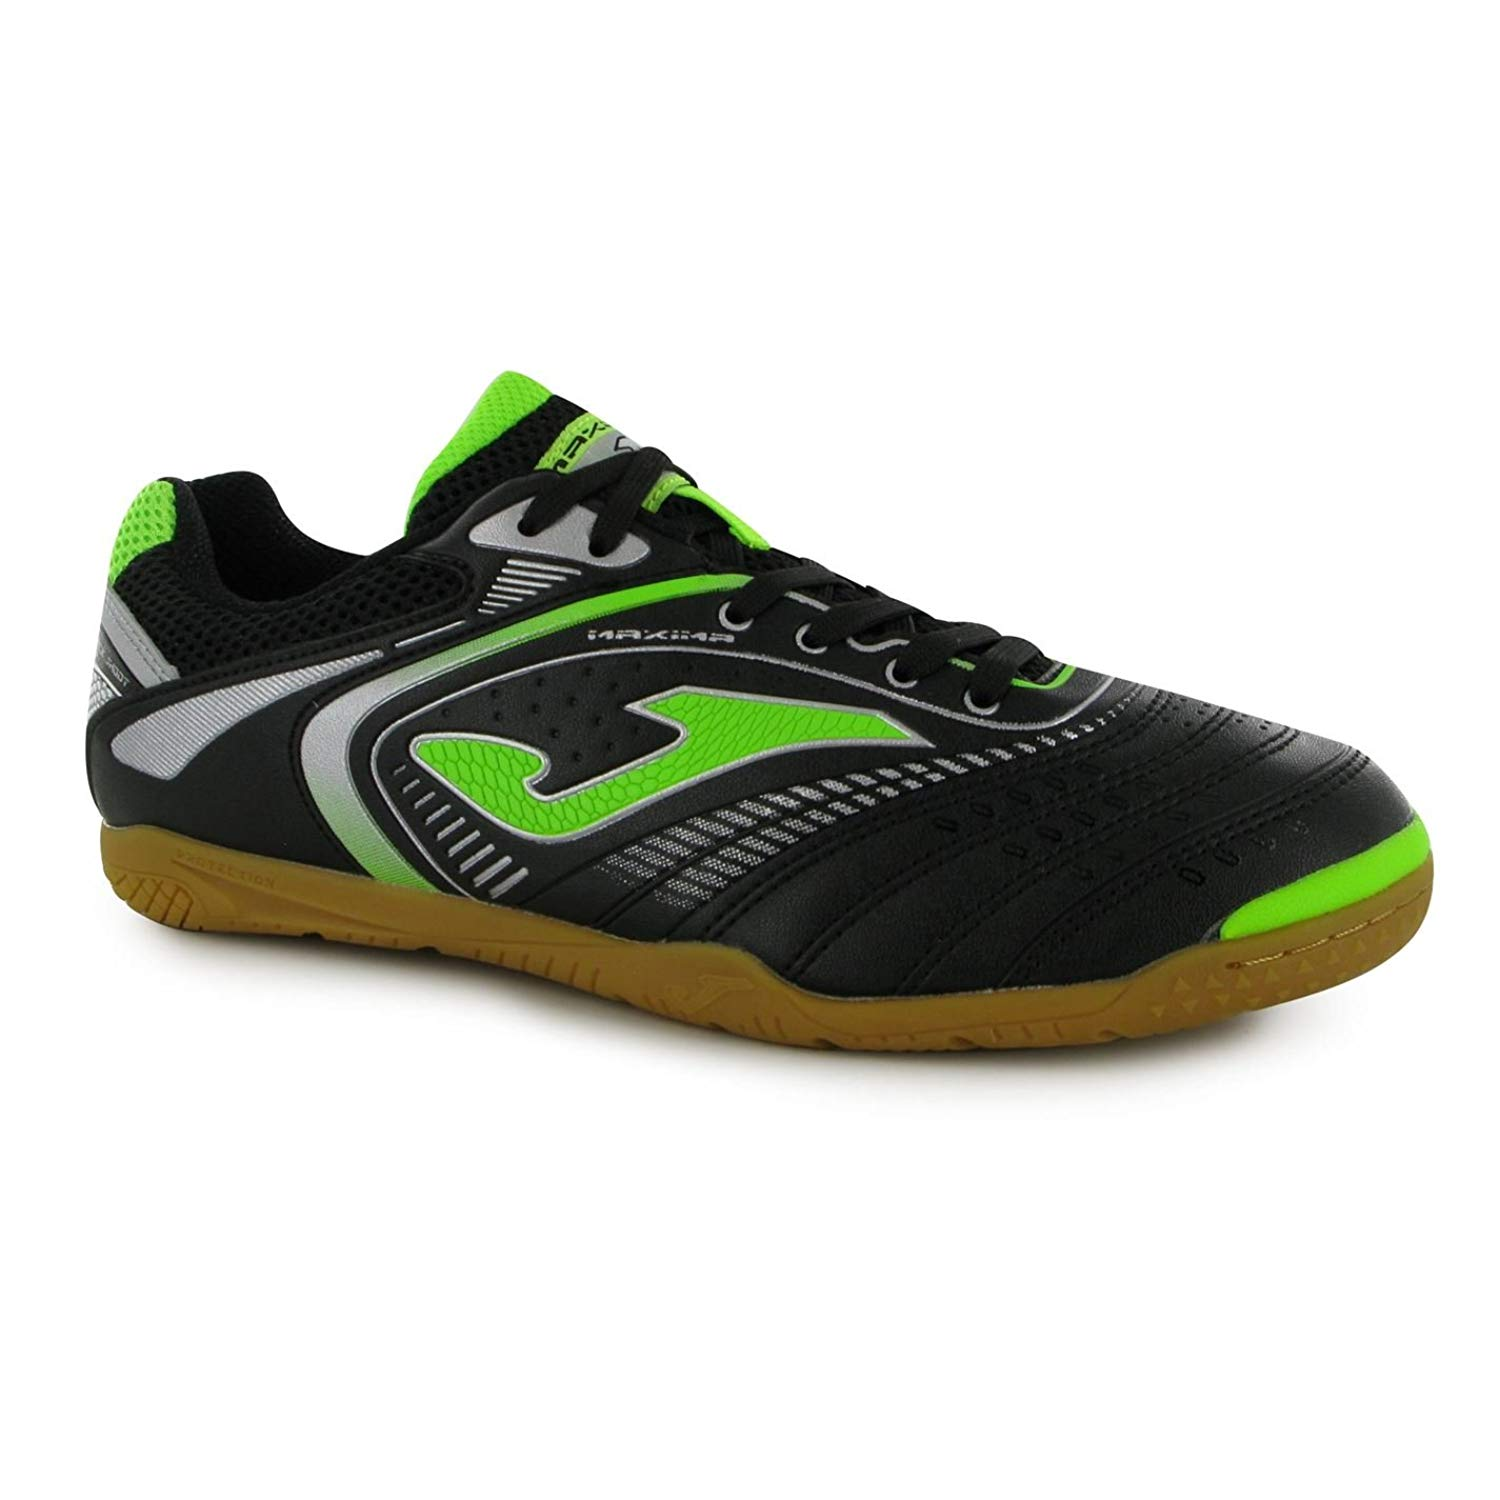 50a49d1dd61f Get Quotations · Joma Mens Maxina Indoor Football Boots Trainers Shoes